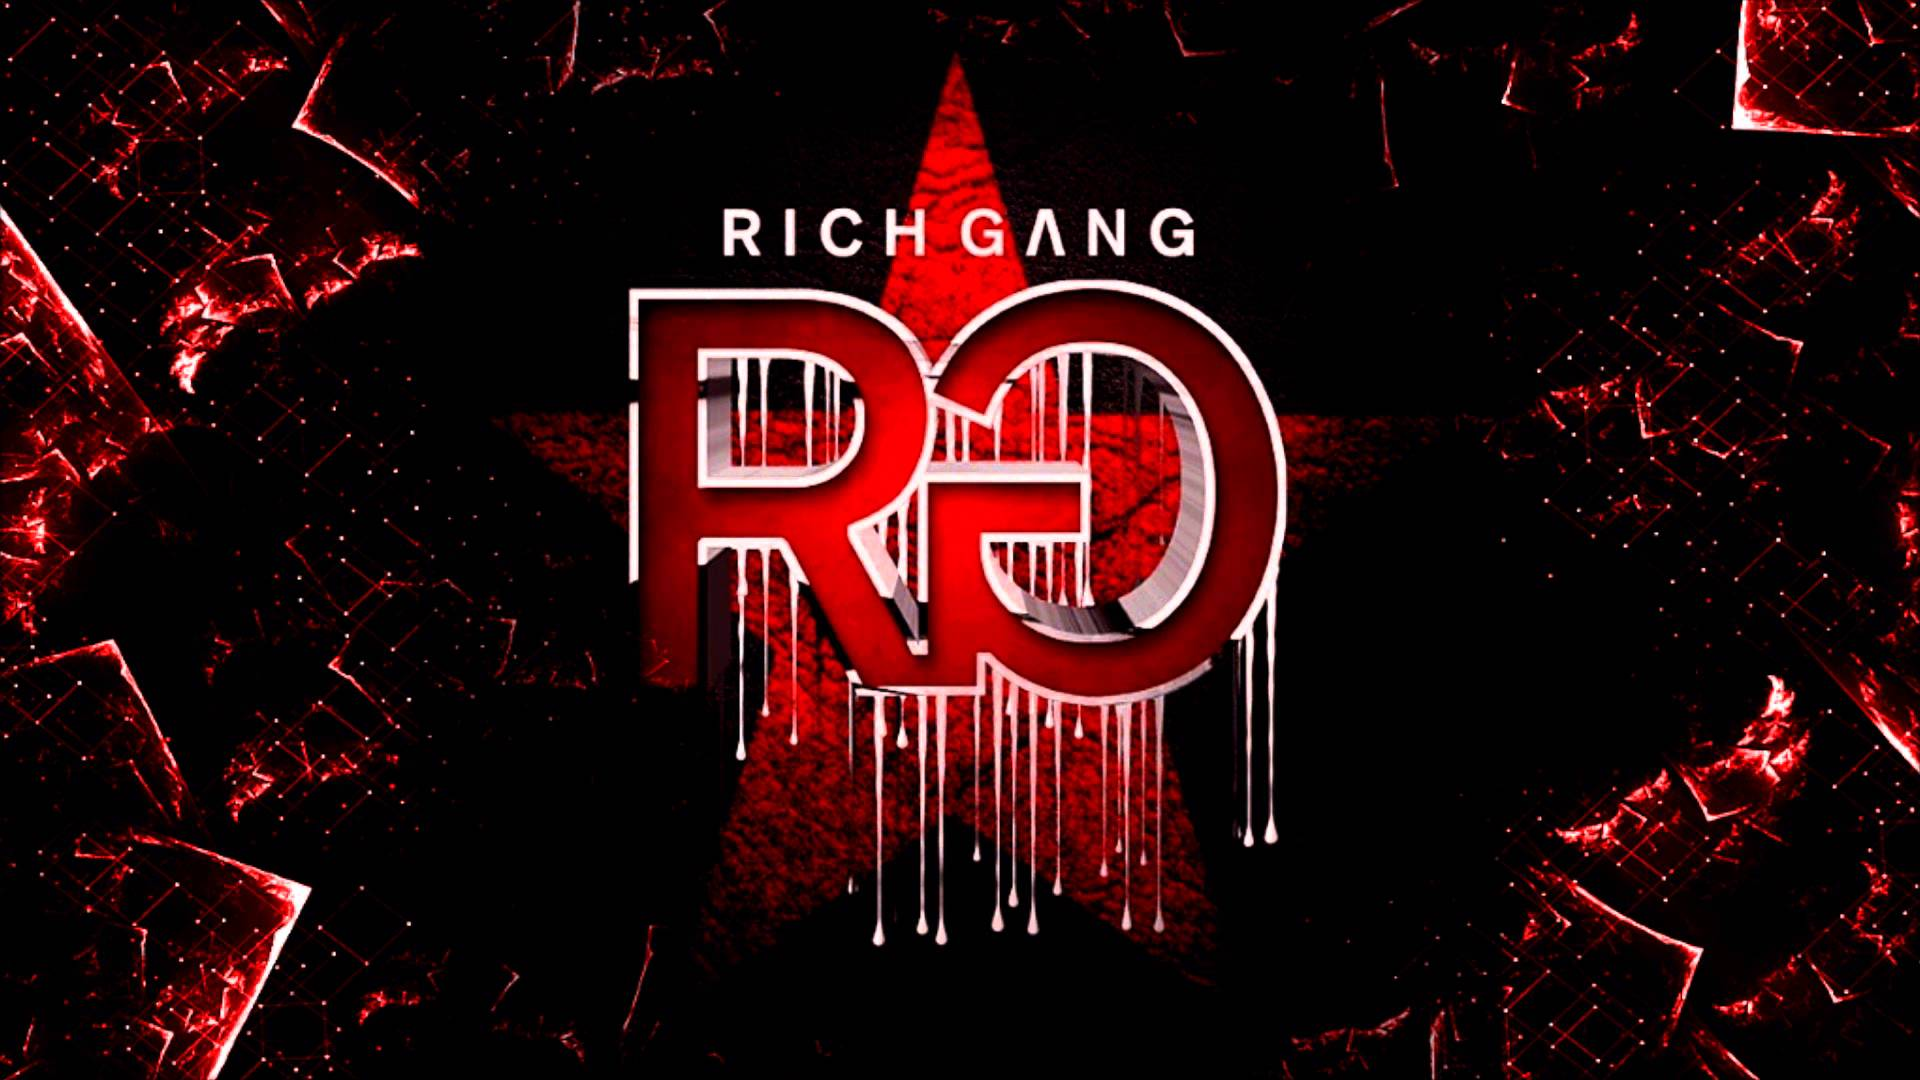 Rich Gang Logo Wallpaper Rich gang album cover 1920x1080